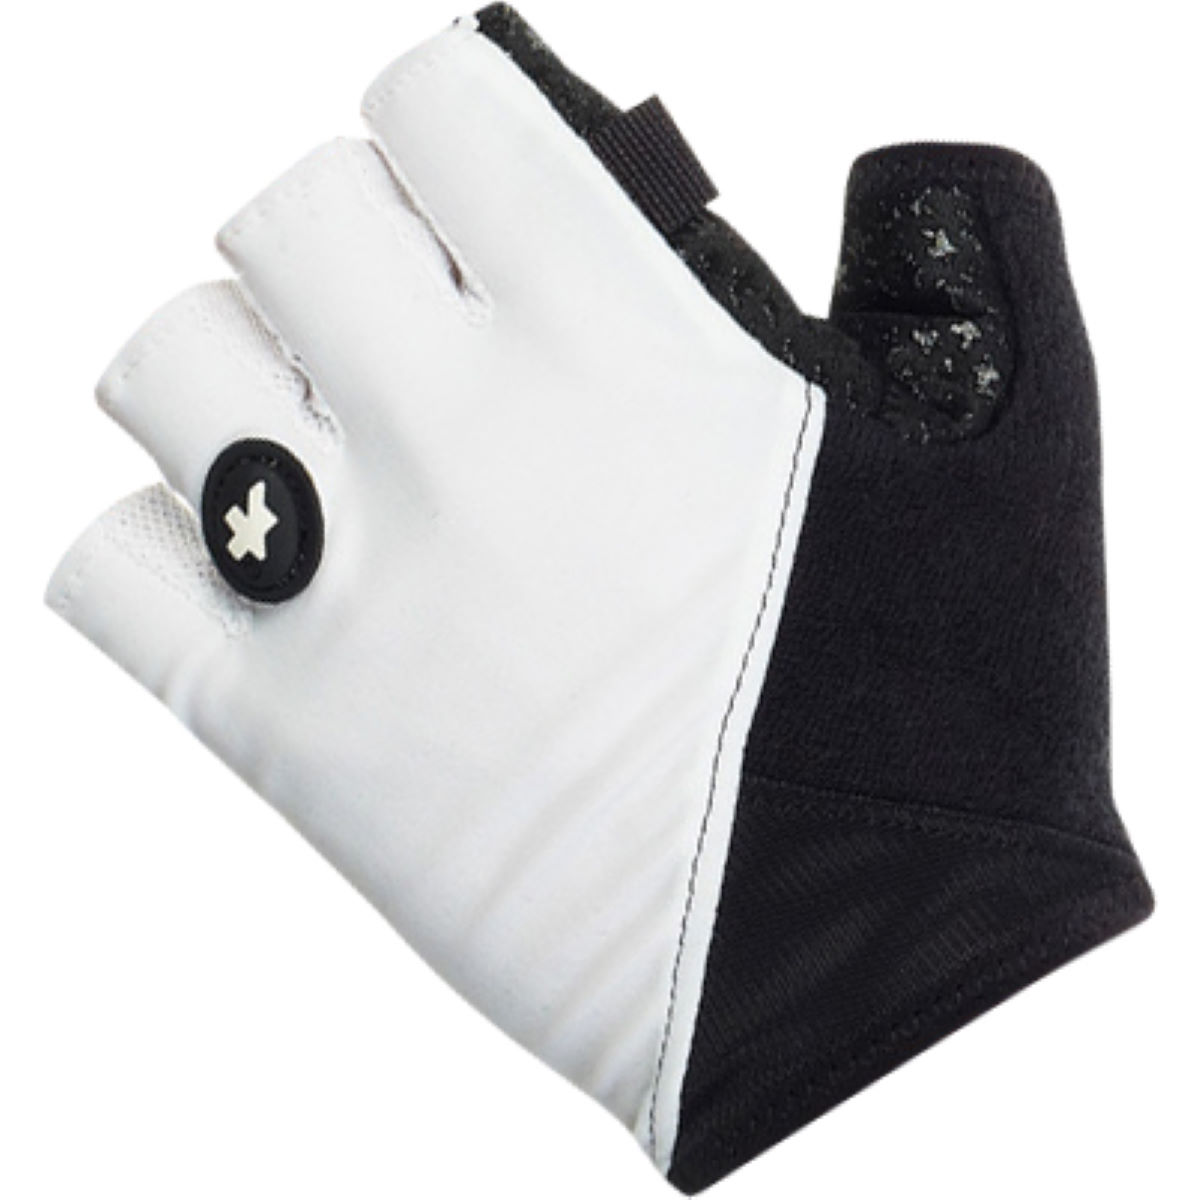 Gants courts Assos summerGloves_s7 - XS White Panther Gants courts